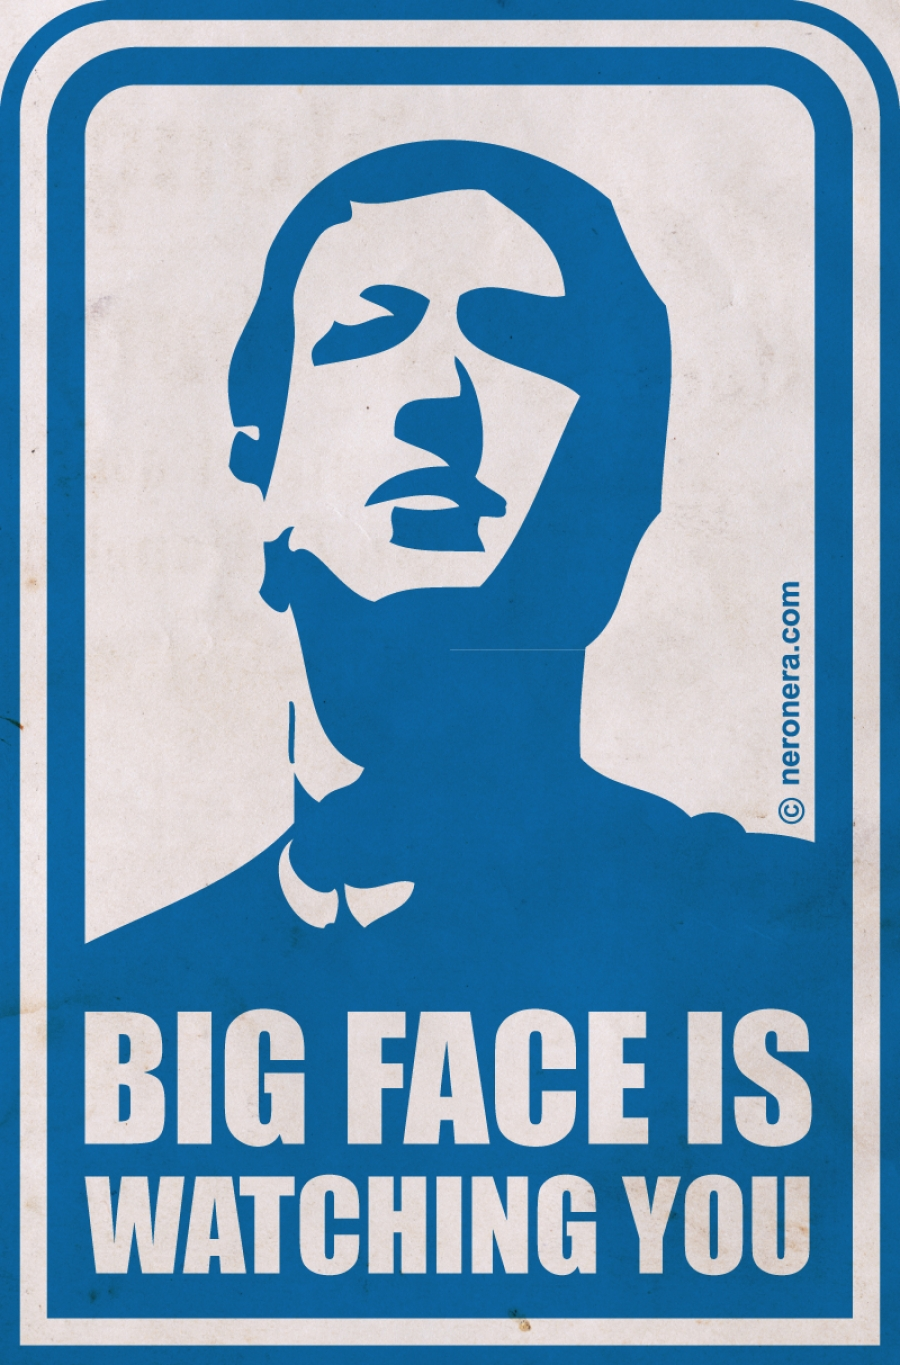 Big Face is Watching you